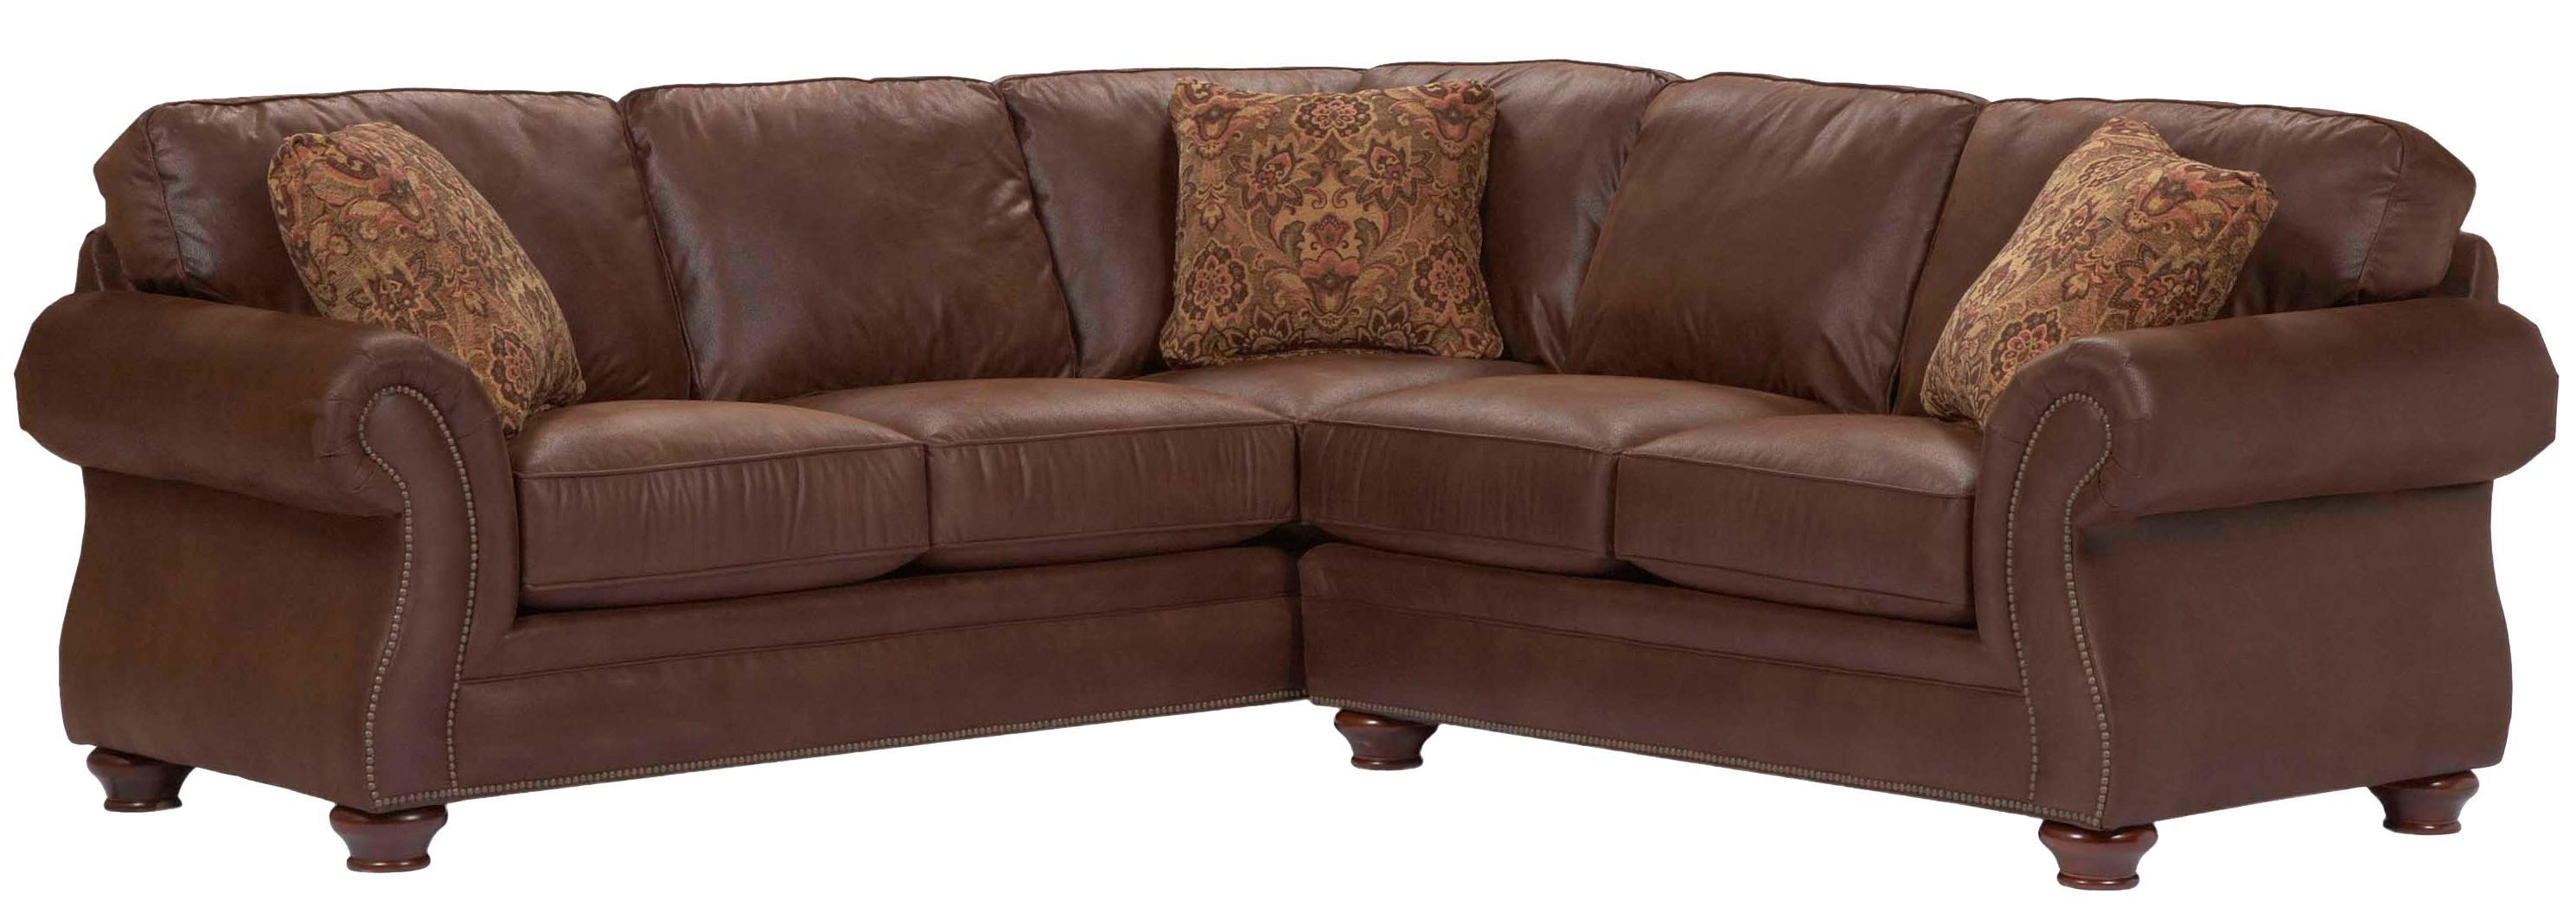 sofas by design des moines sofaore wick inspirational sectional ia